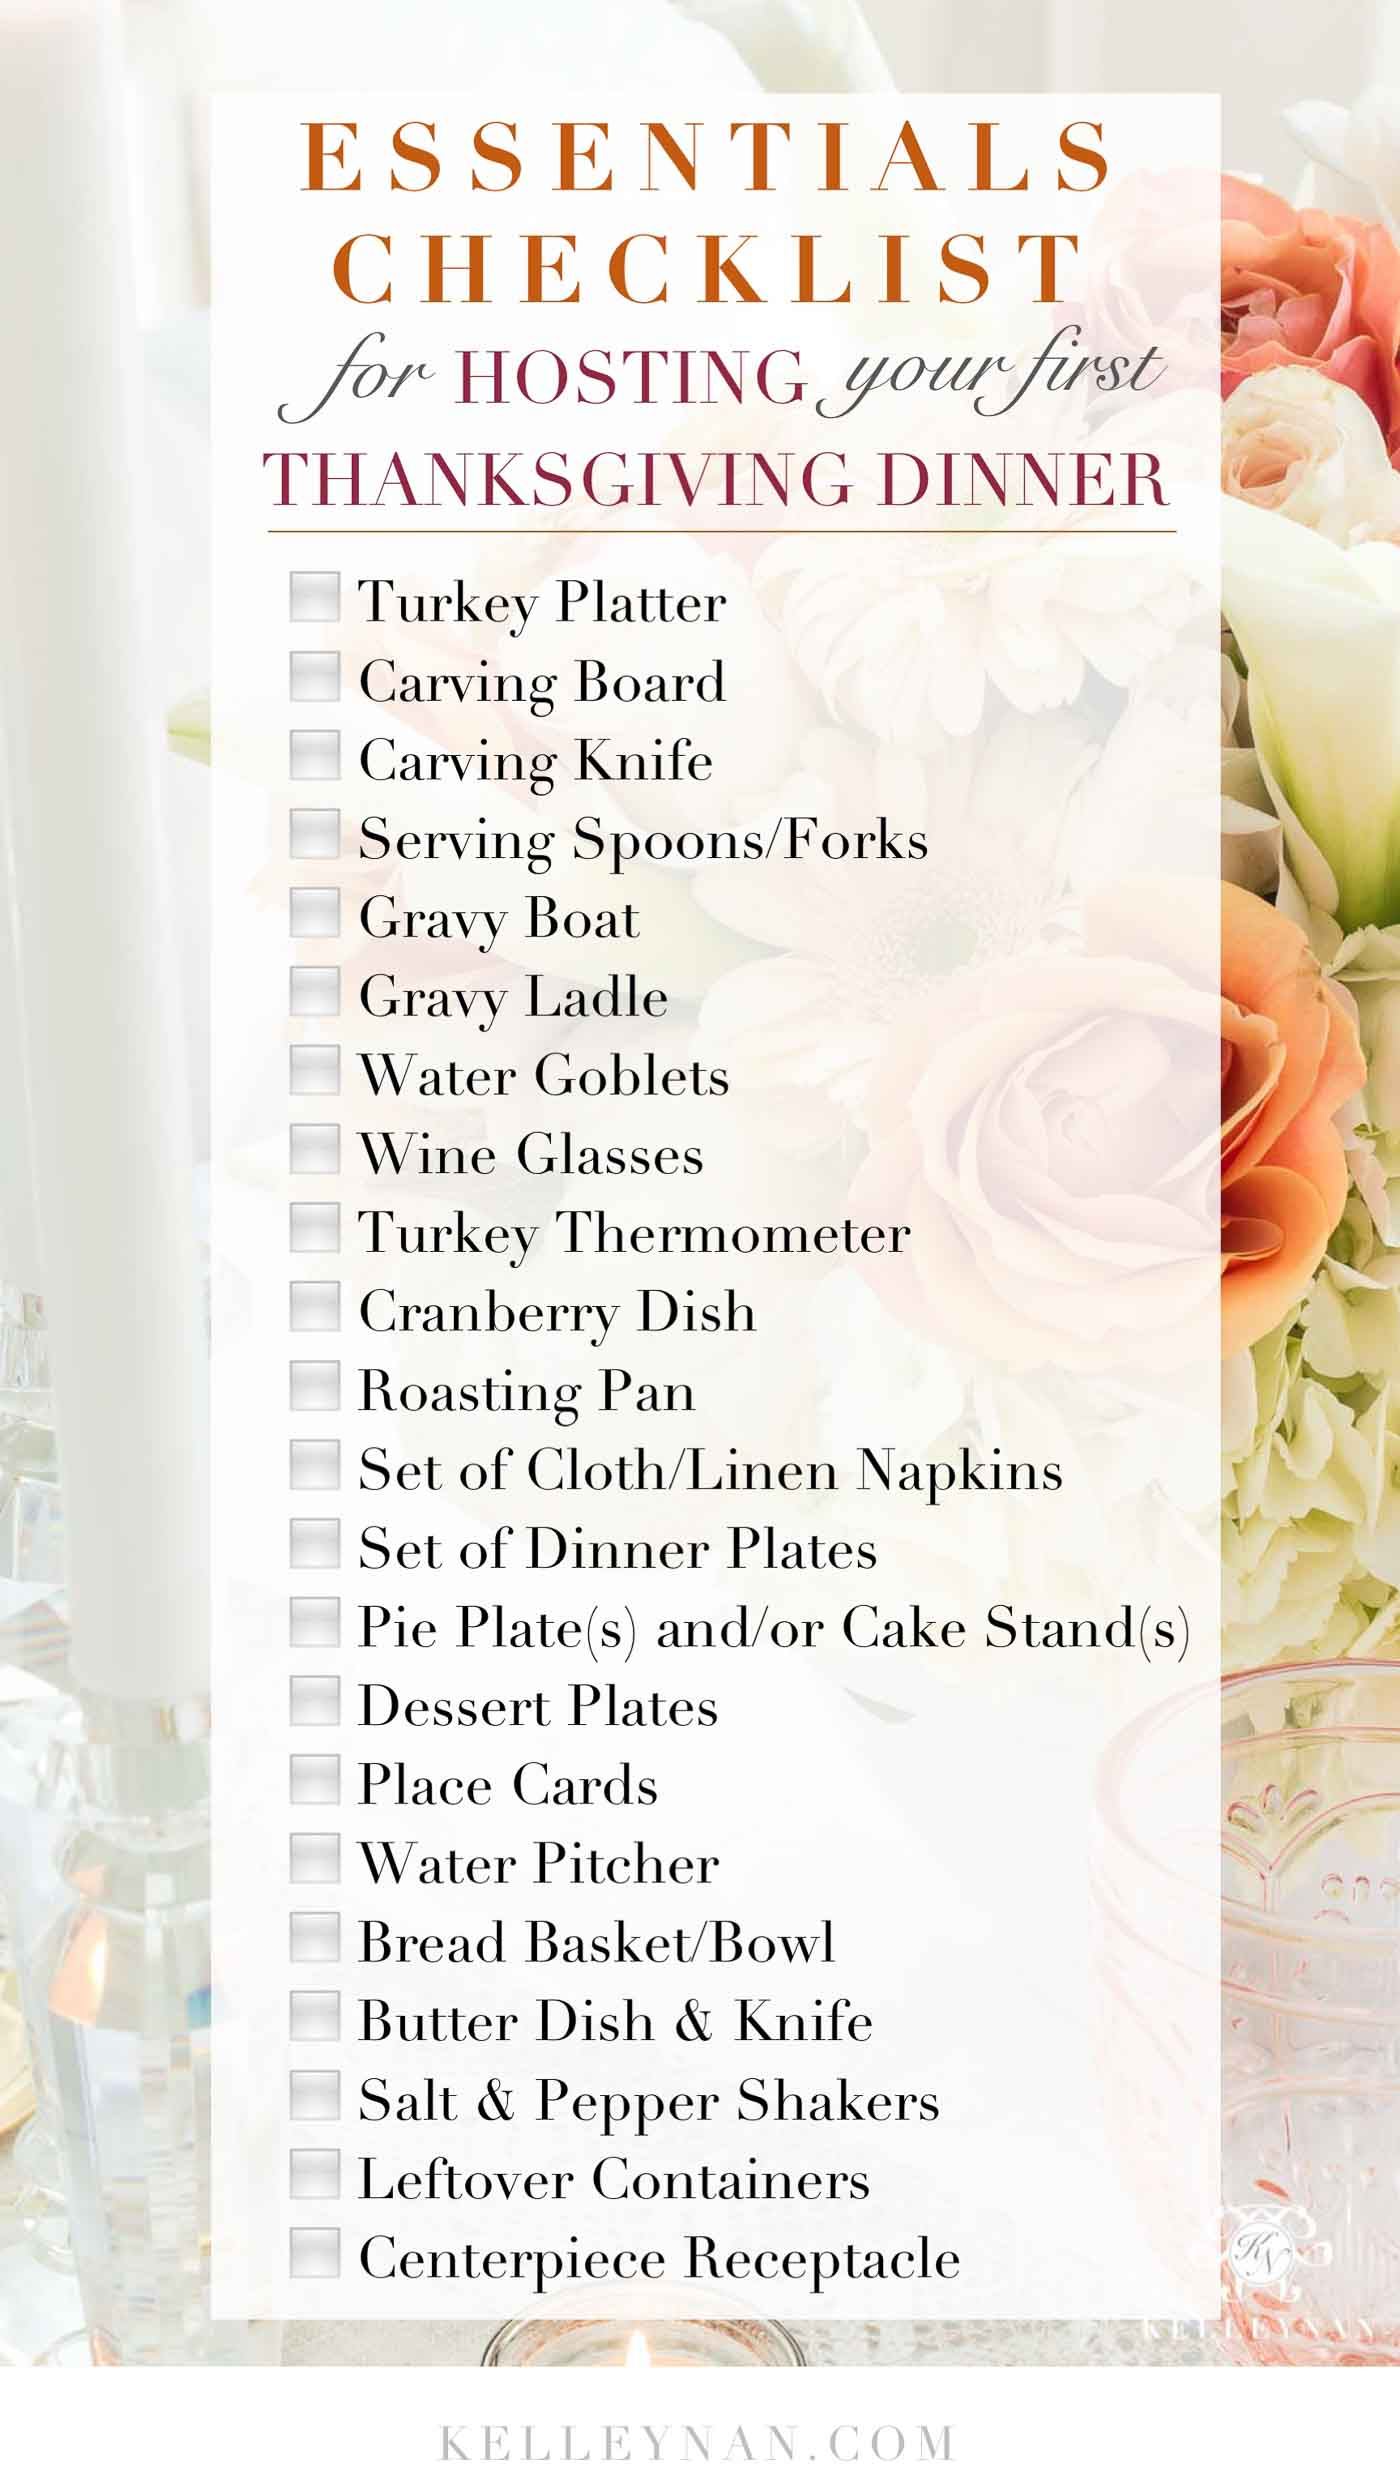 Essentials for Hosting Your First Thanksgiving with Full Checklist